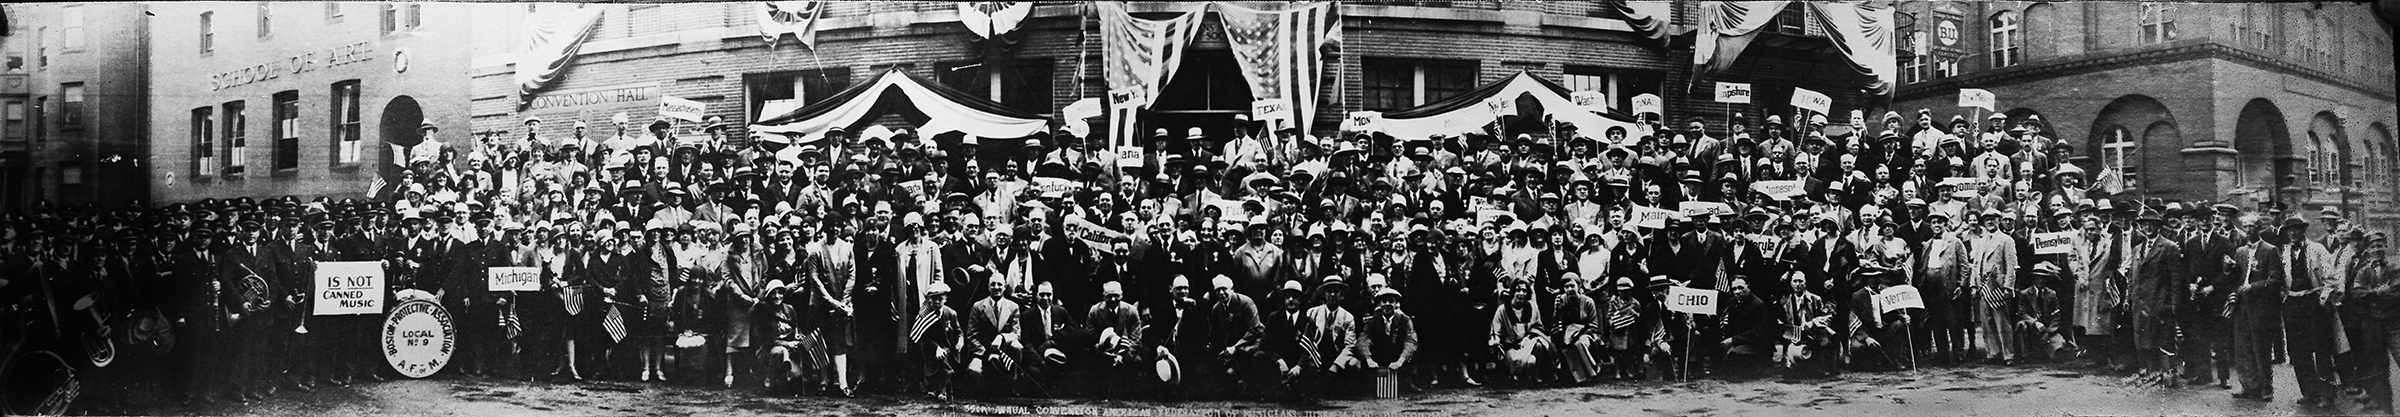 Musicians from throughout the United States and Canada gather in solidarity at the 35th AFM Convention in Boston, 1930. (Photo: courtesy International Musician/AFM archives)